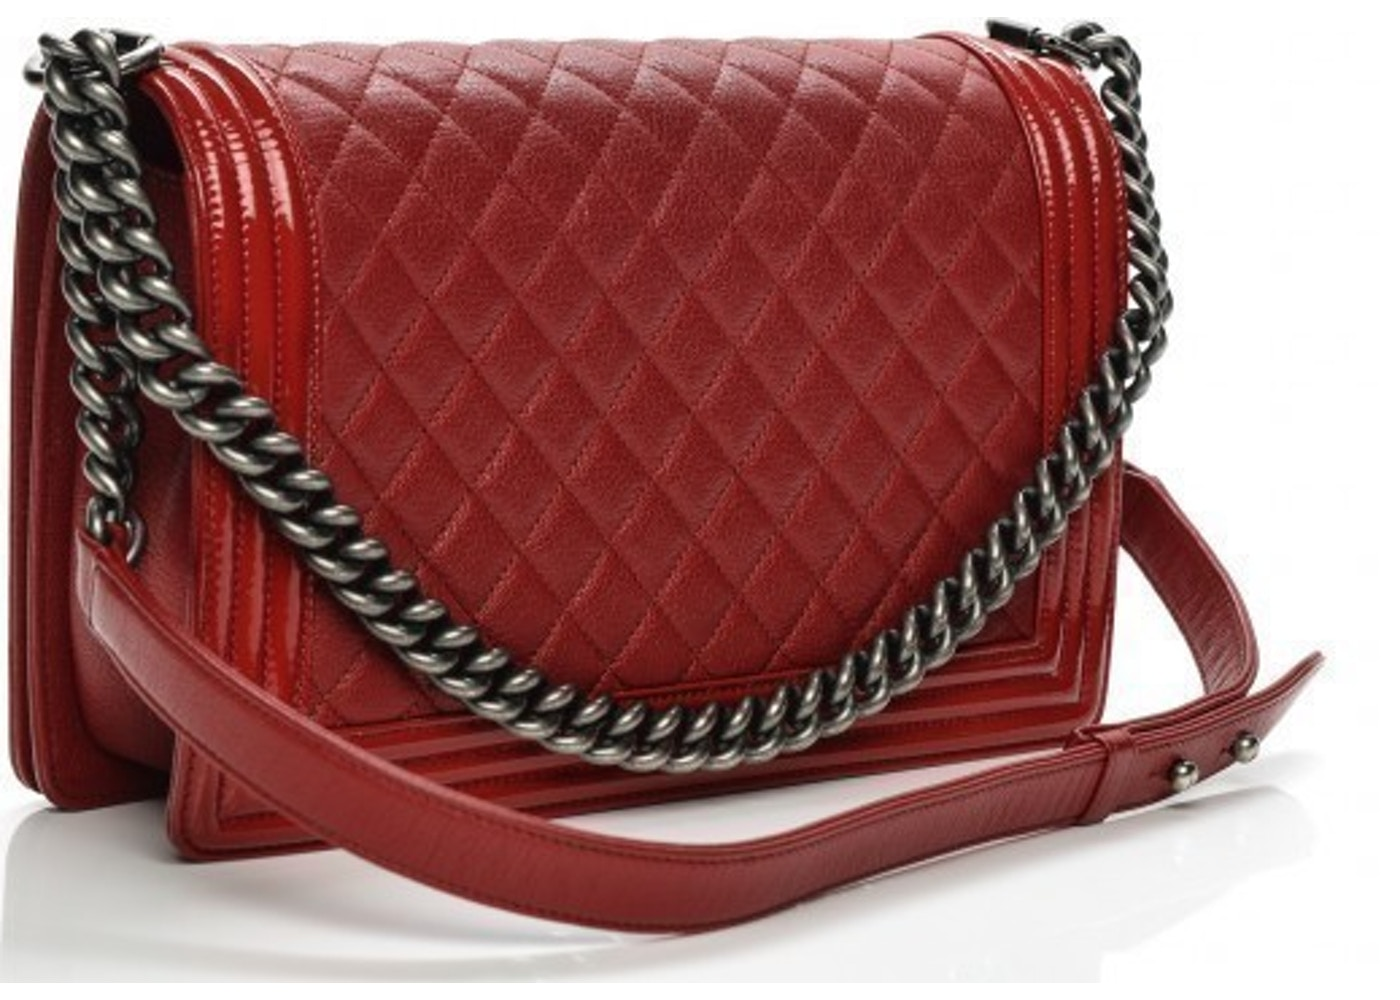 aaa1f5661e2e Chanel Boy Flap Quilted Patent New Medium Red